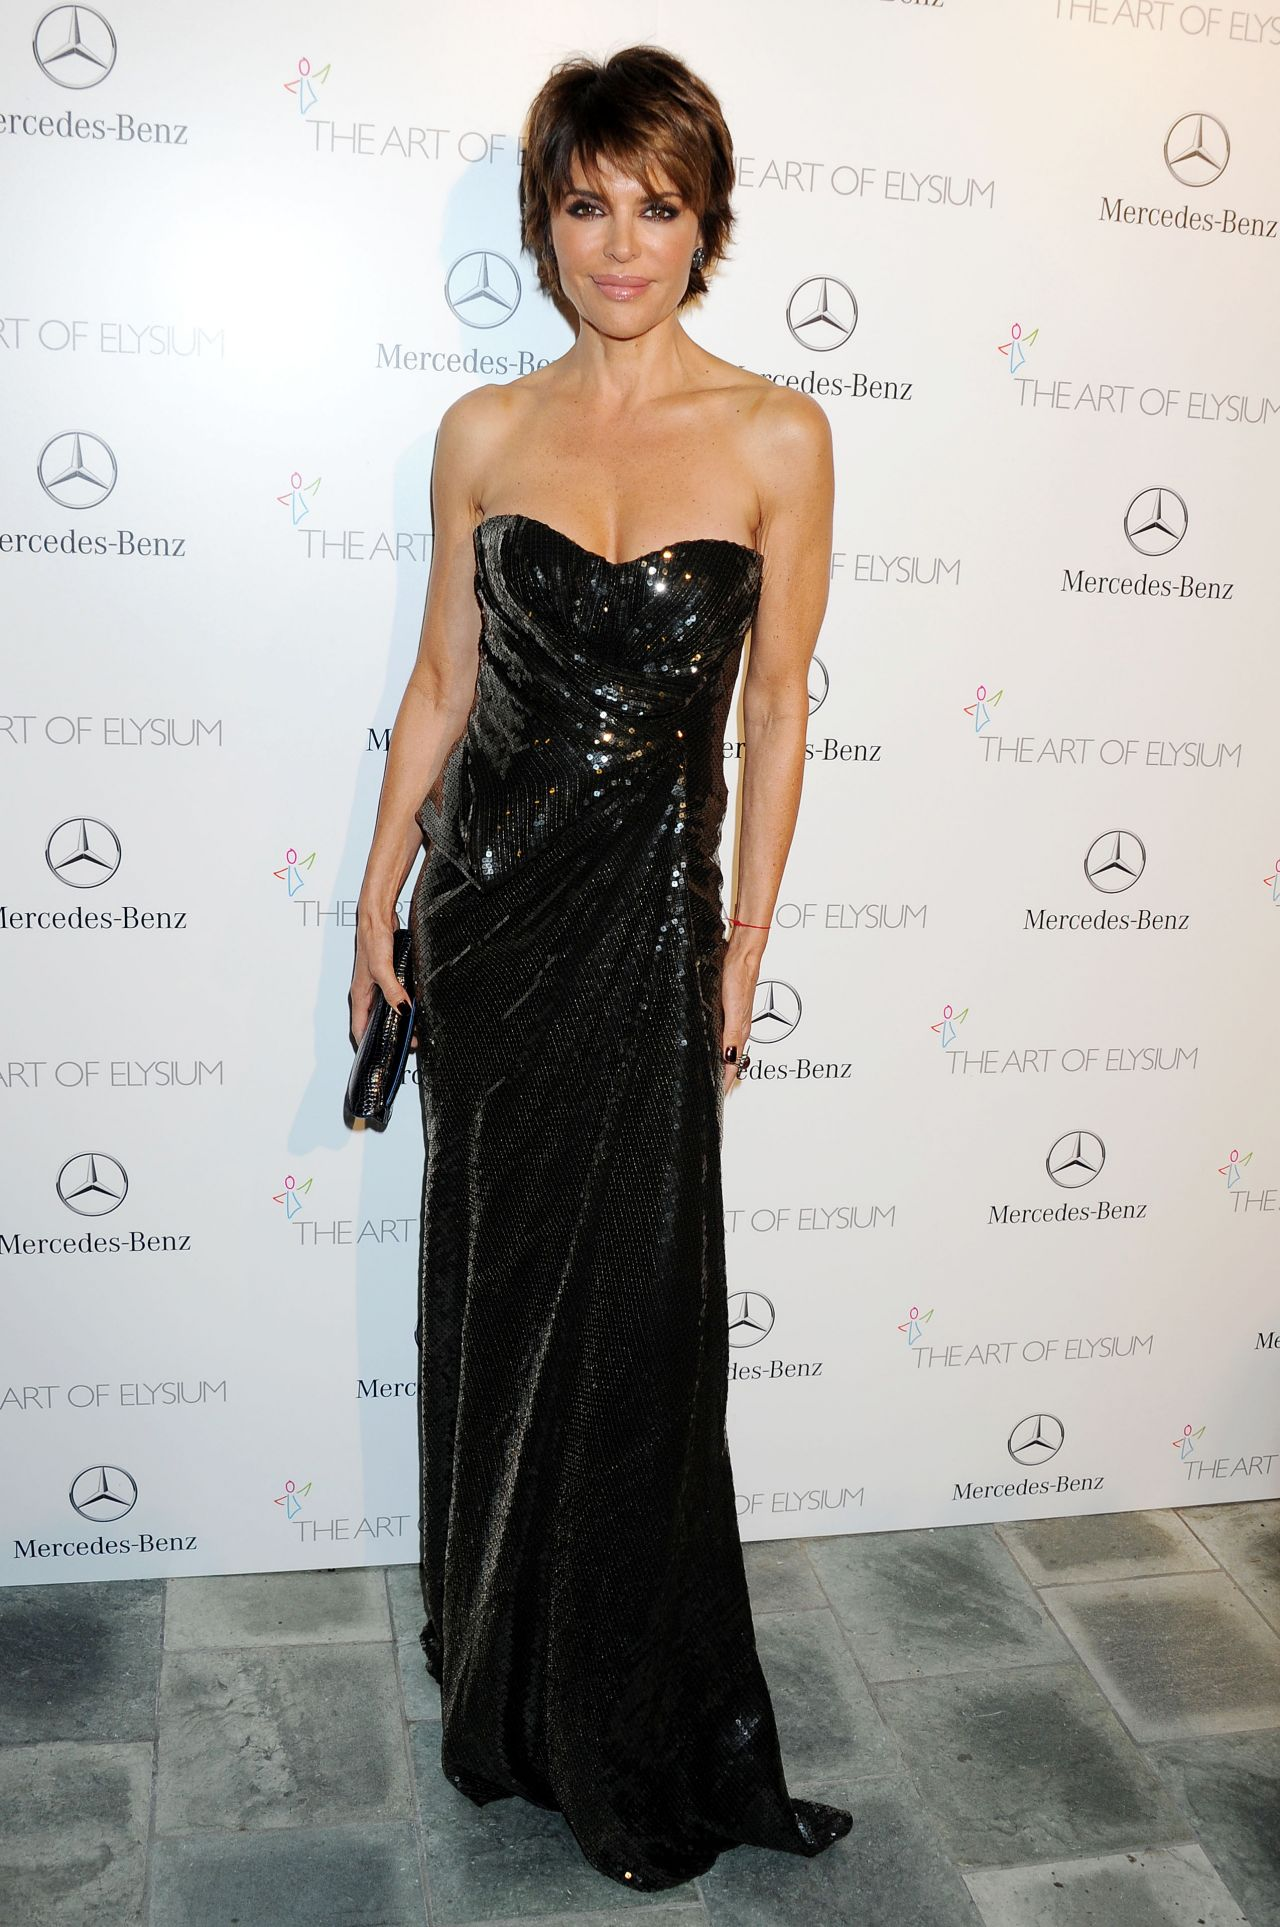 Lisa Rinna Wears Perrier-Jouet at The Art of Elysium HEAVEN Gala, January 2014